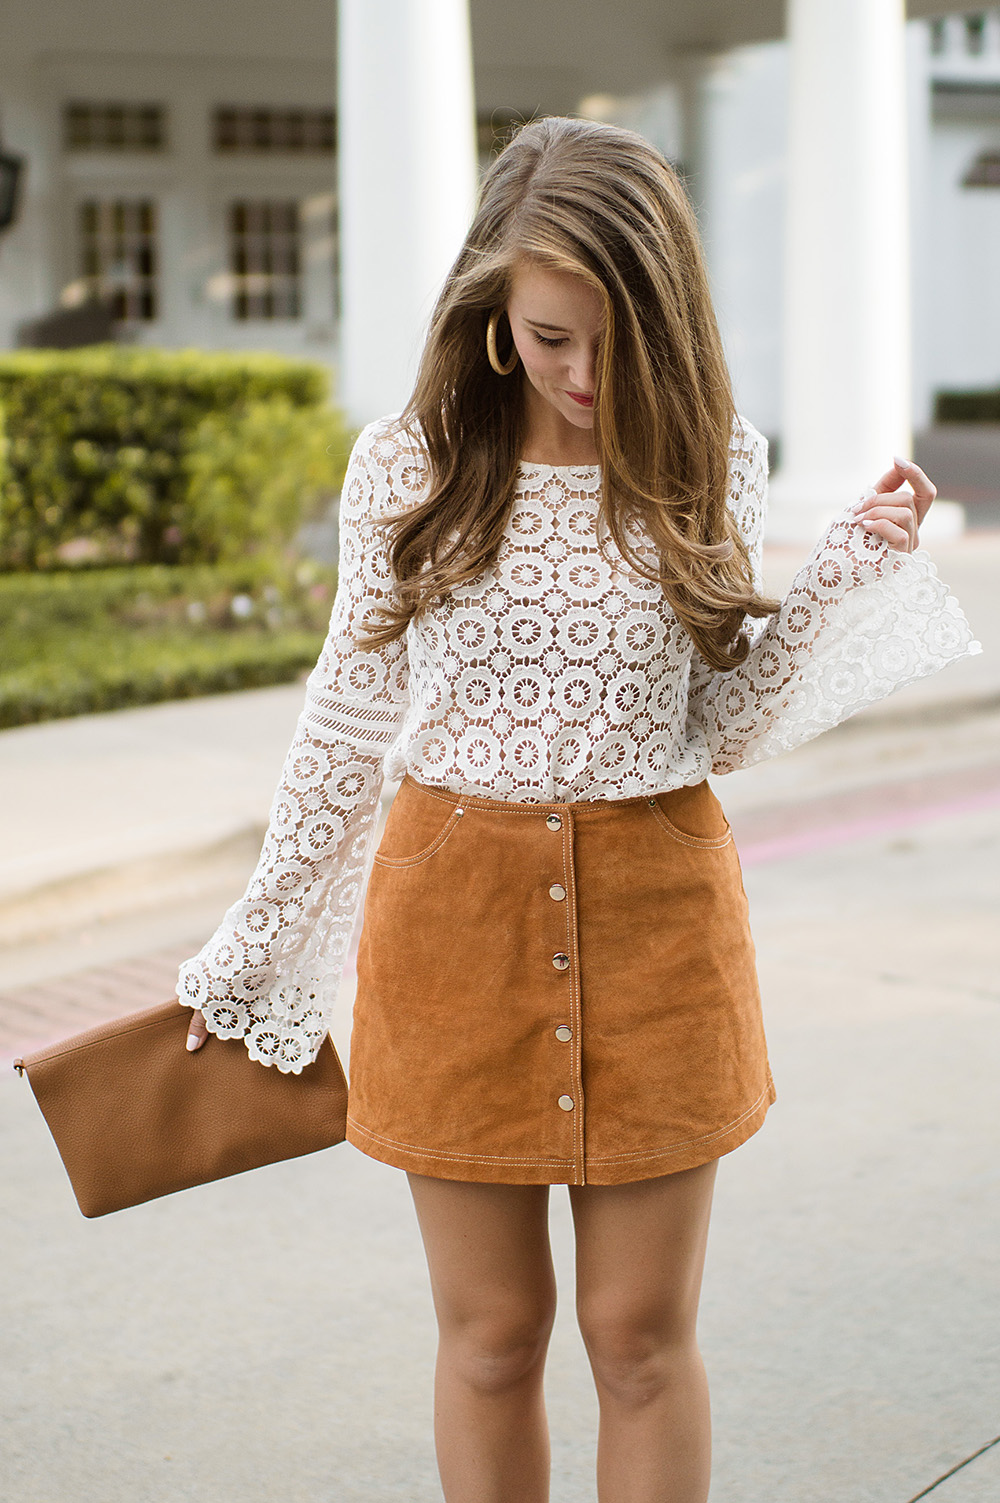 70s Suede Skirt | A Lonestar State Of Southern